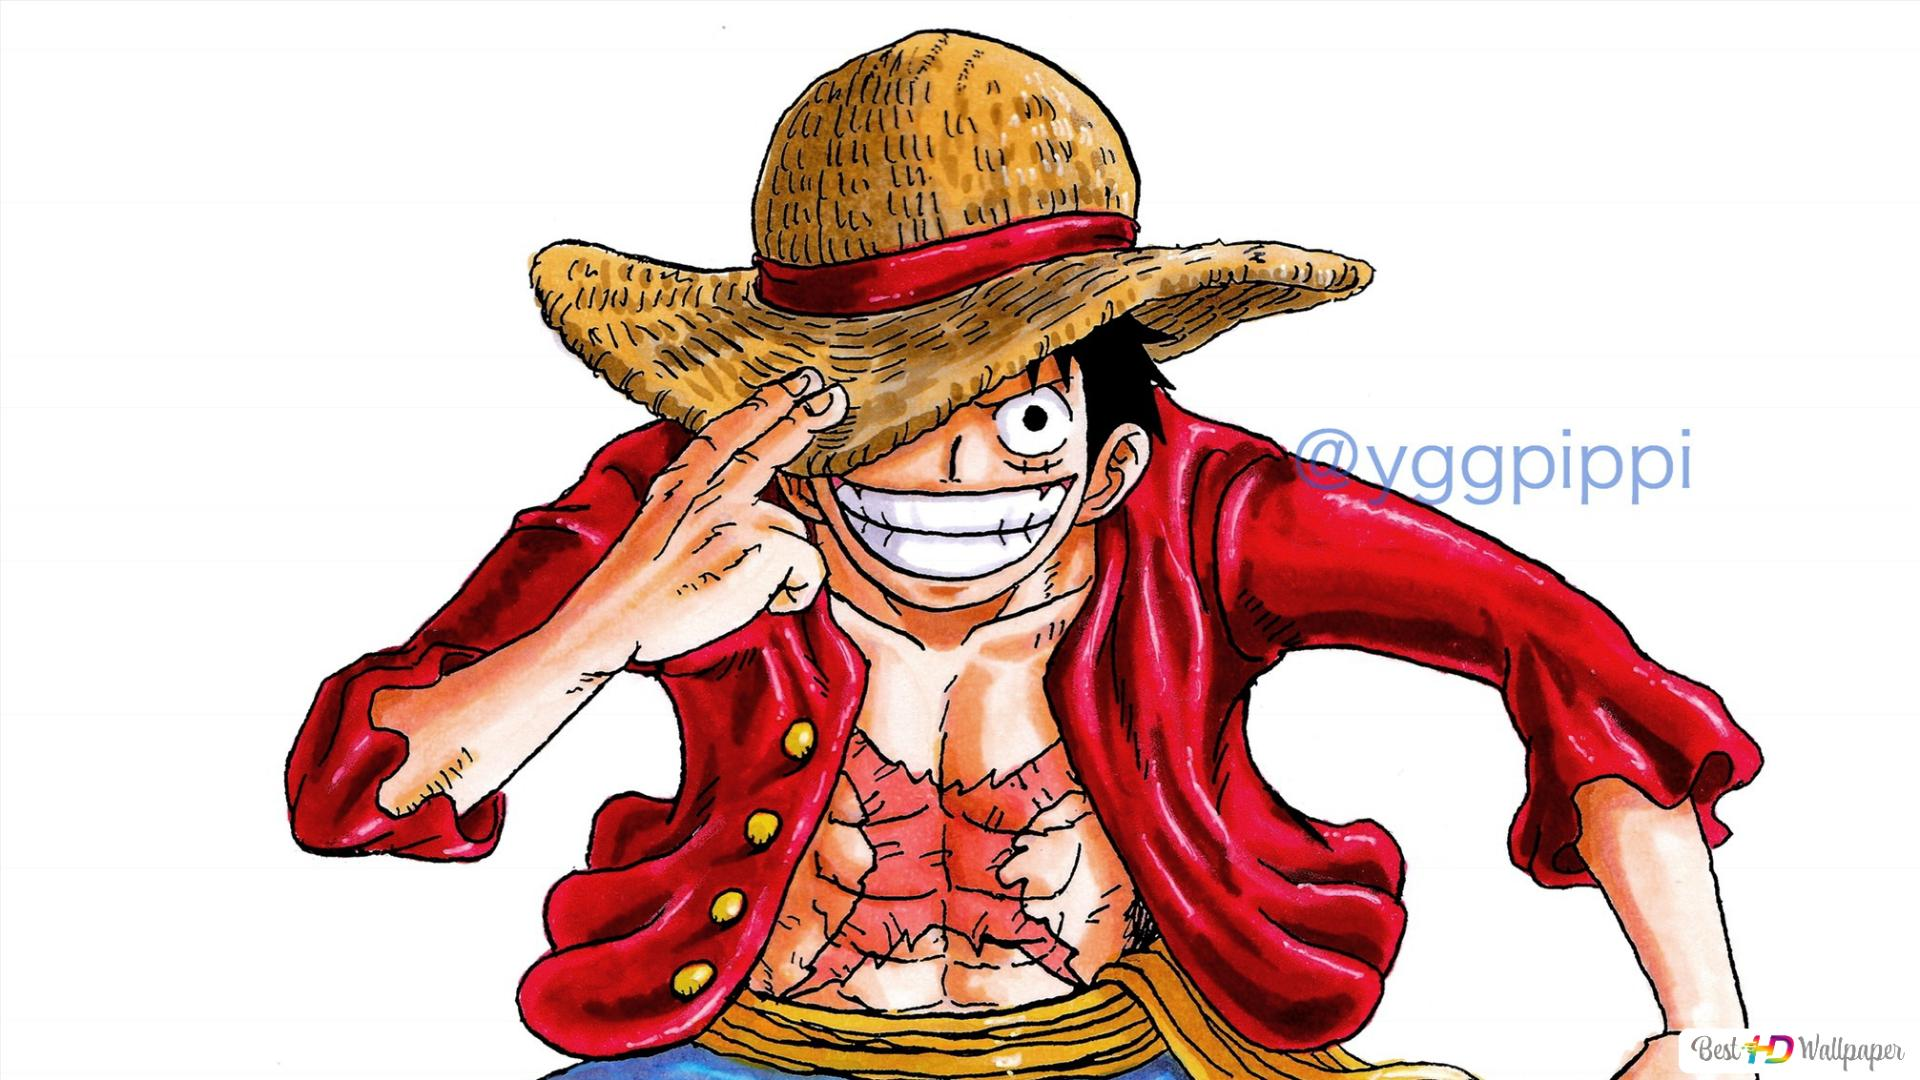 One Piece Straw Hat Luffy Hd Wallpaper Download